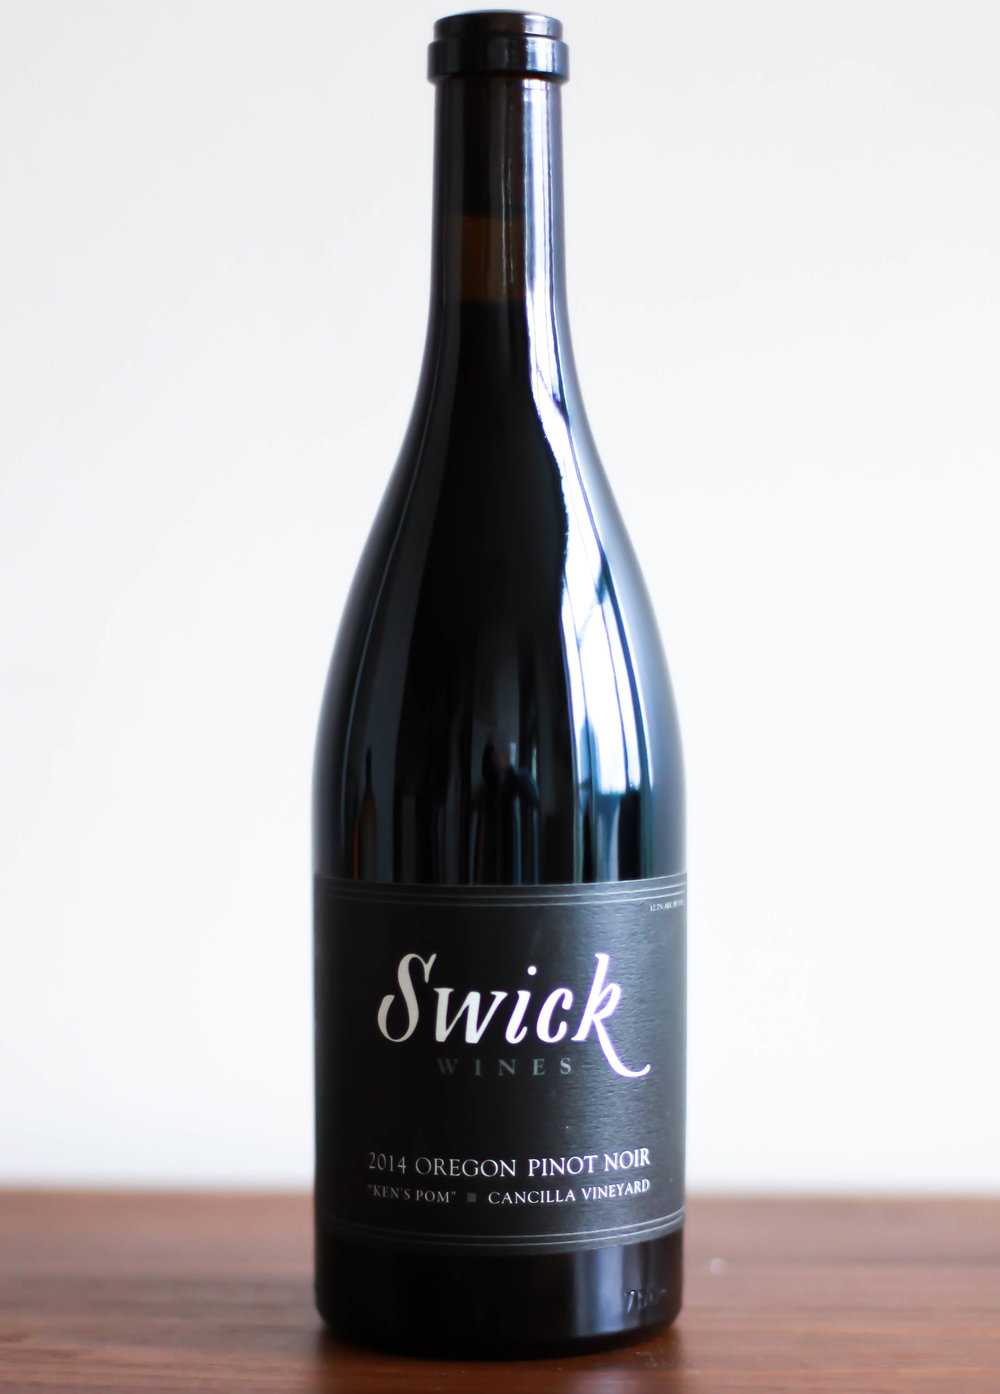 JOE SWICK CANCILLA VINEYARD PINOT NOIR